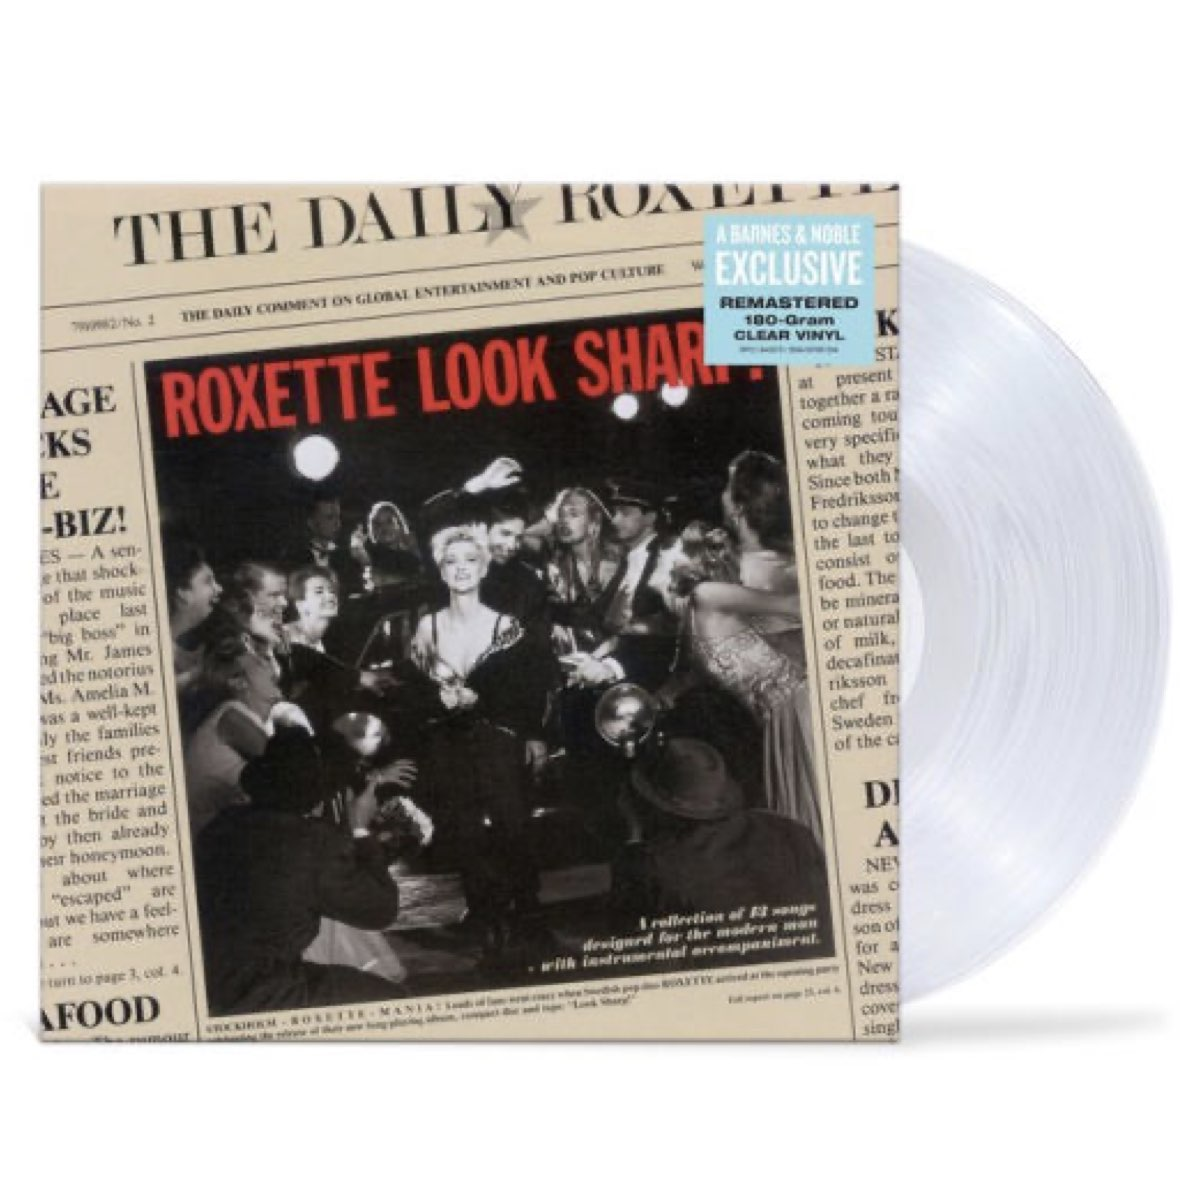 Roxette - Look Sharp! [Limited Edition - Clear Vinyl]